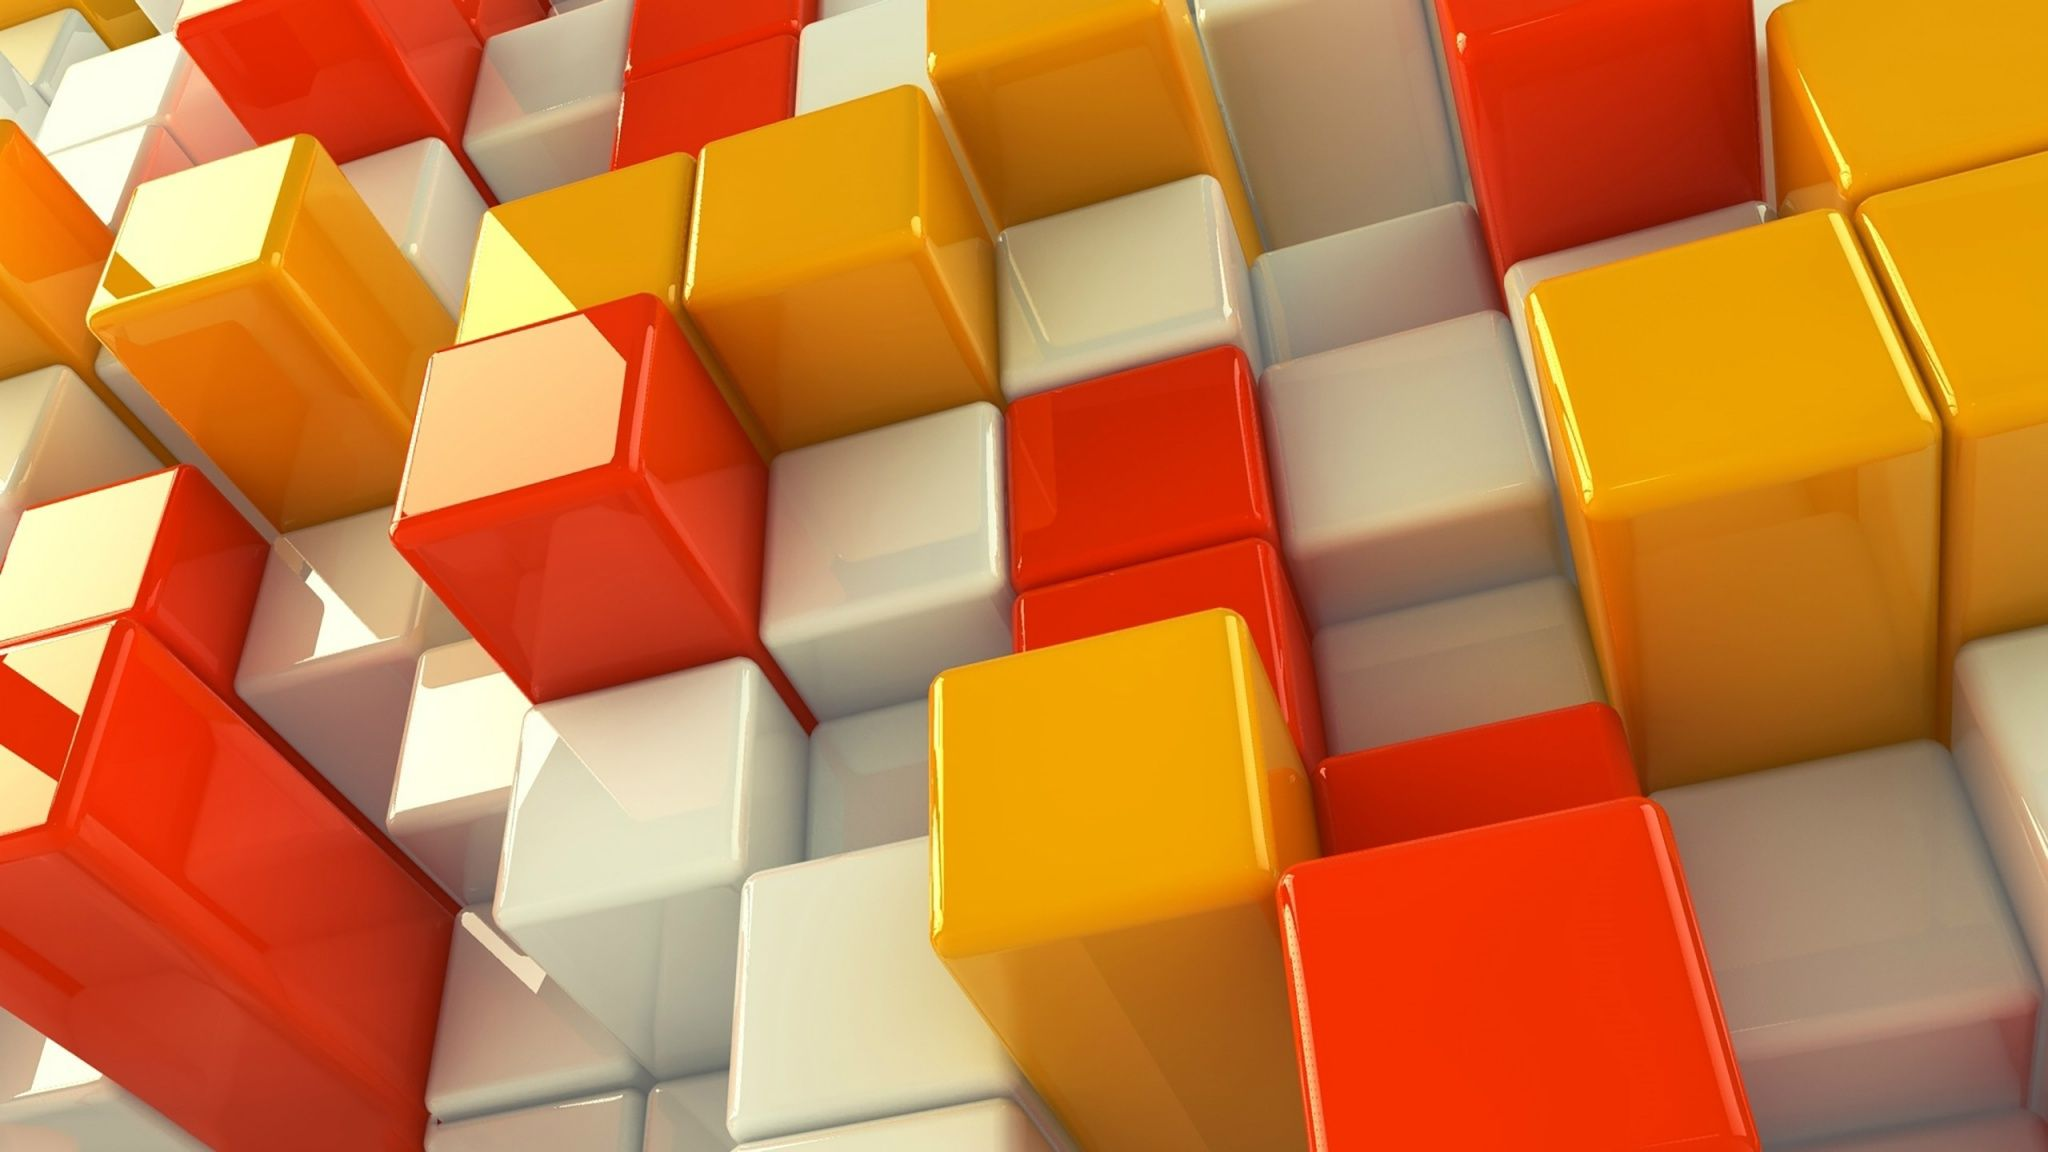 2048x1152 White Orange And Yellow Cubes Wallpapers - 2048x1152 - 356404